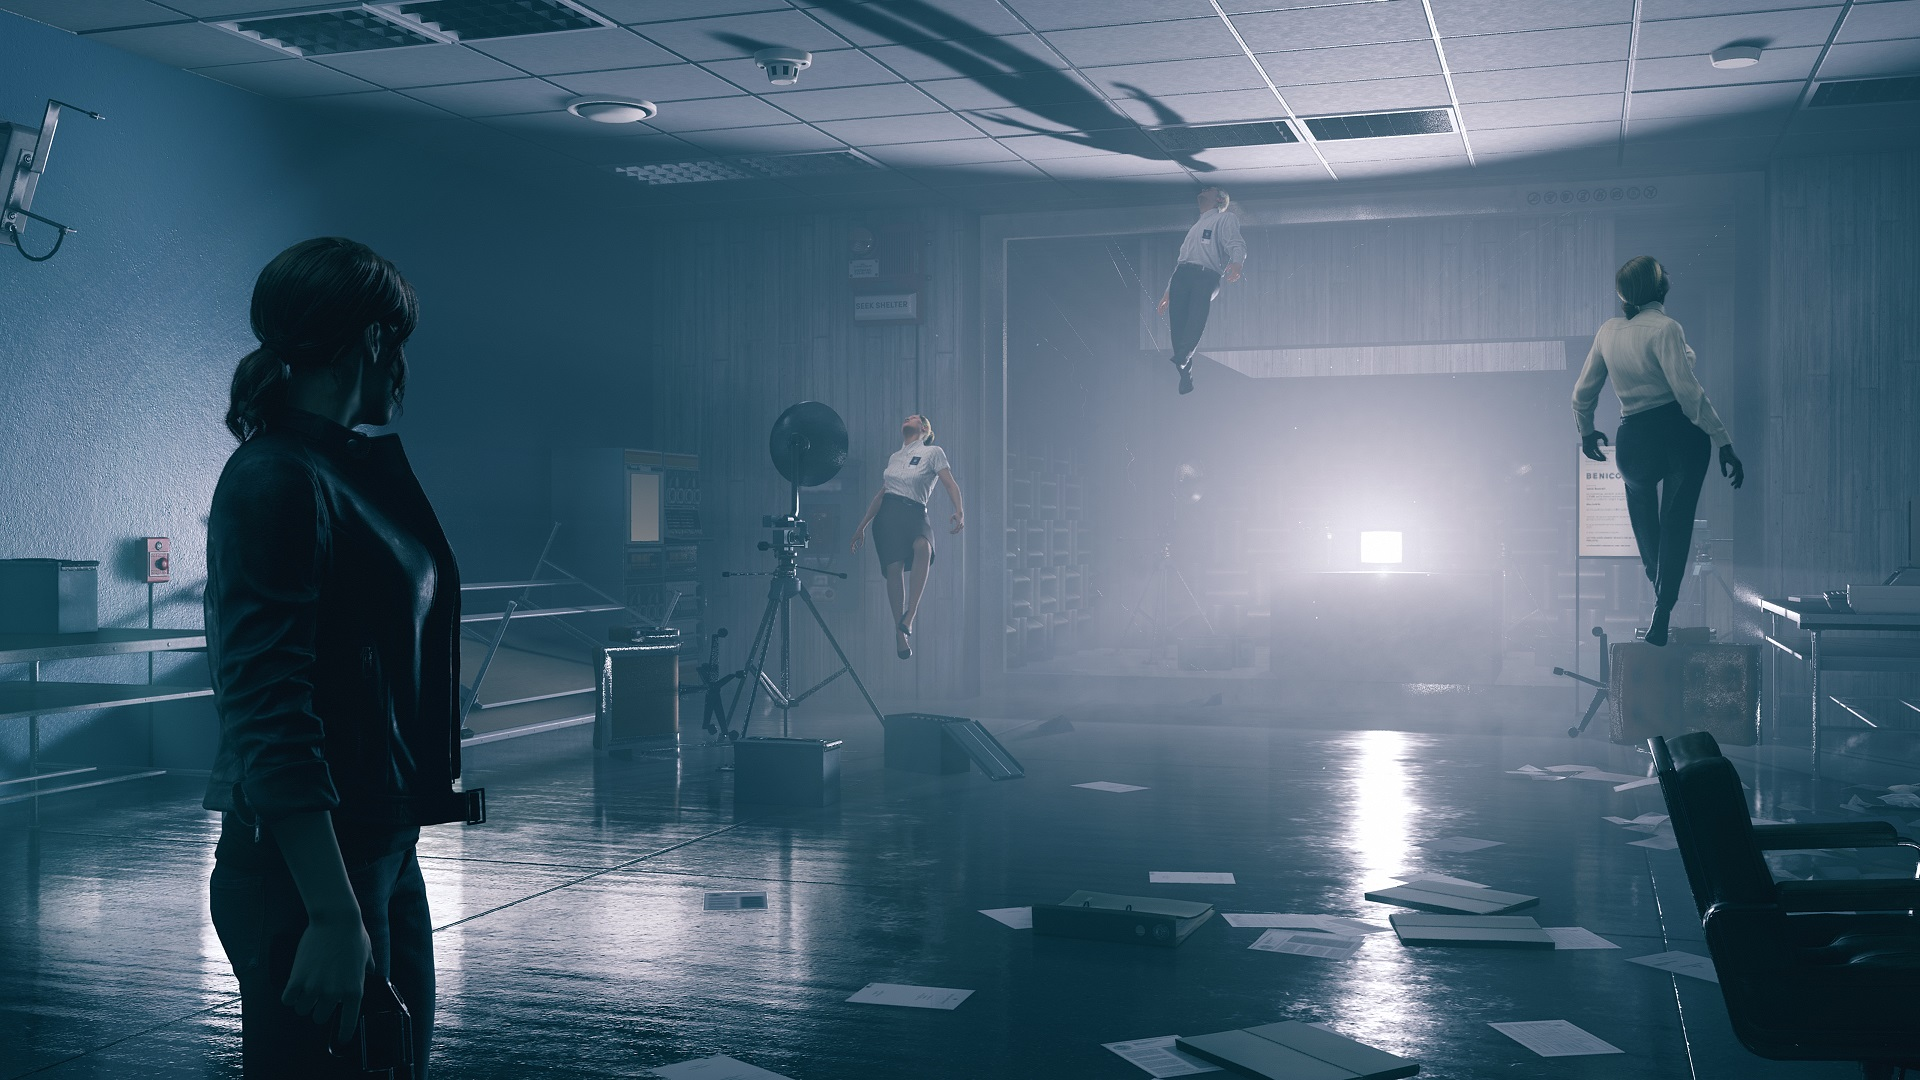 Remedy's Control takes place in one really weird house screenshot